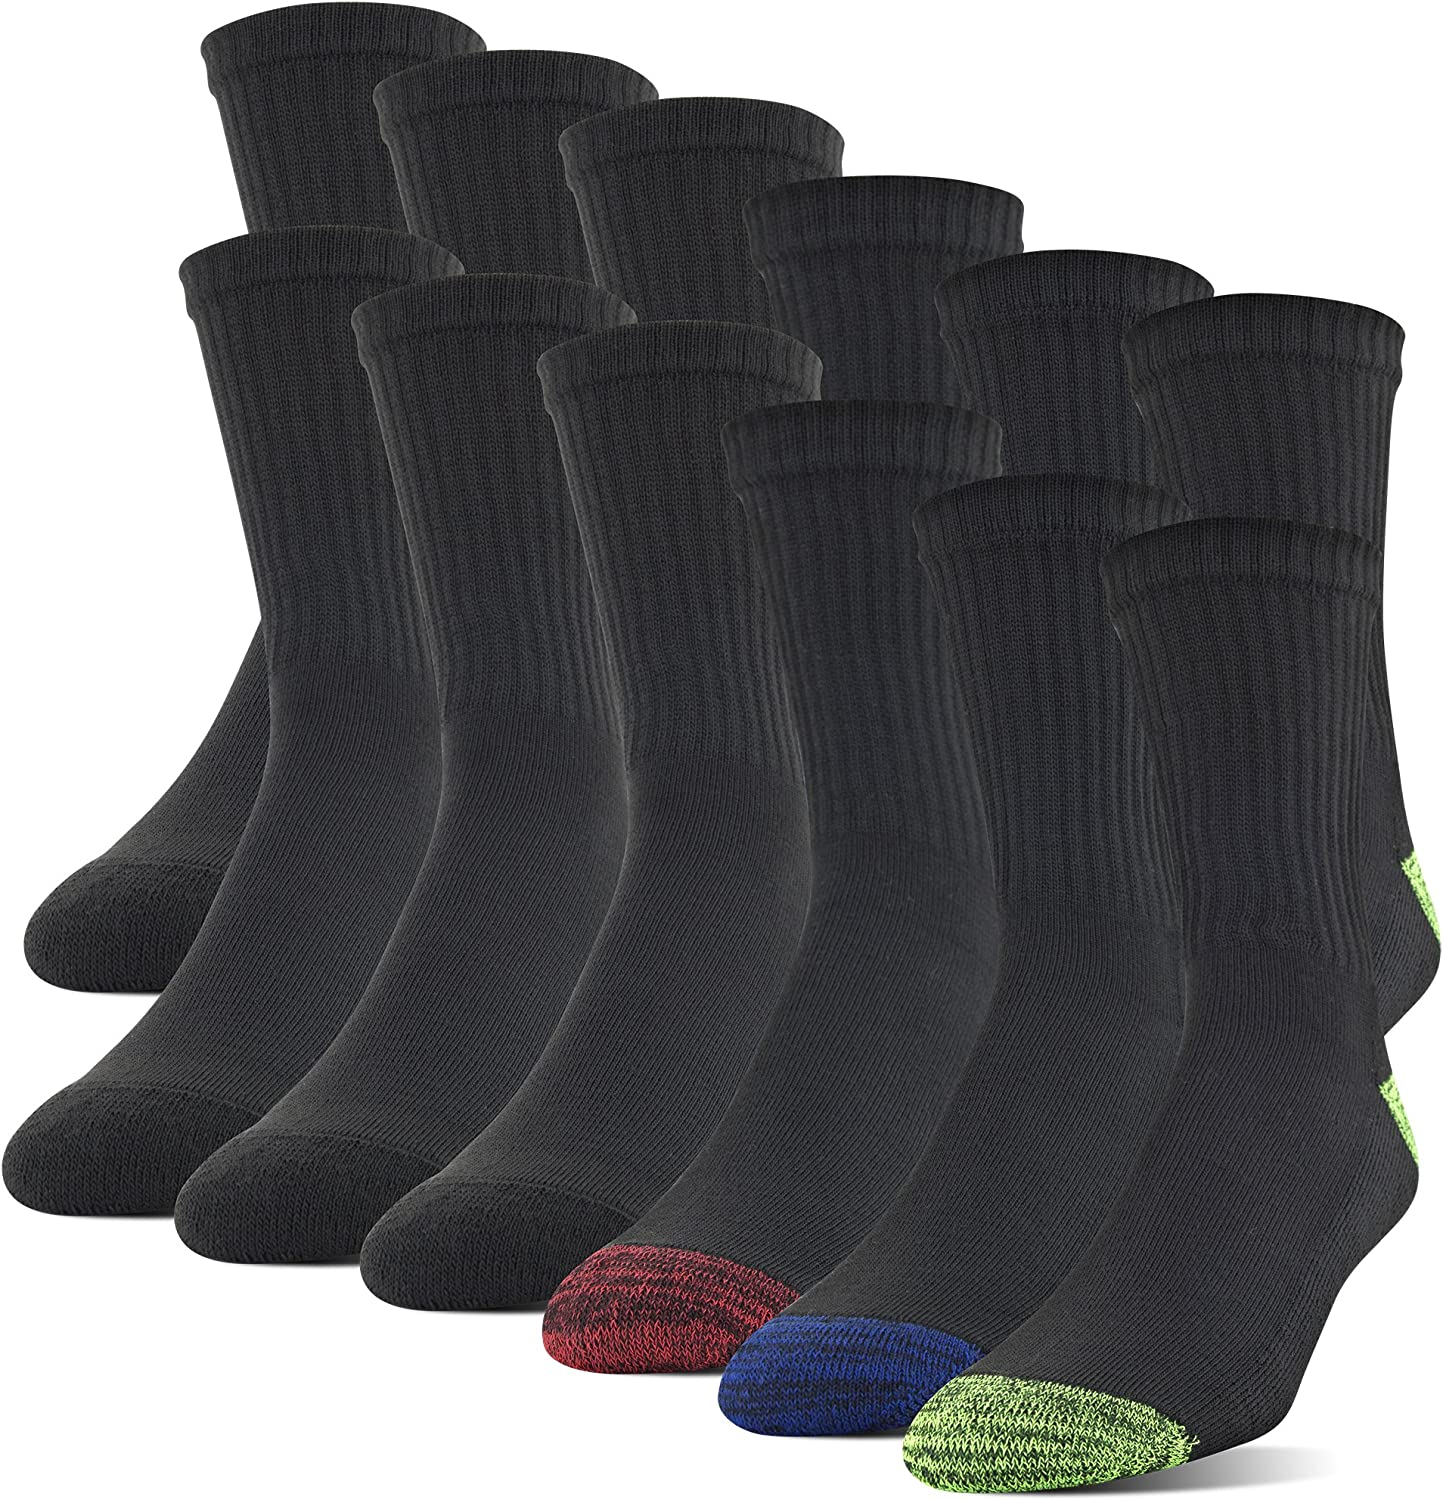 Gildan Men's Polyester Half Cushion Mid-Crew Socks, 12-Pack